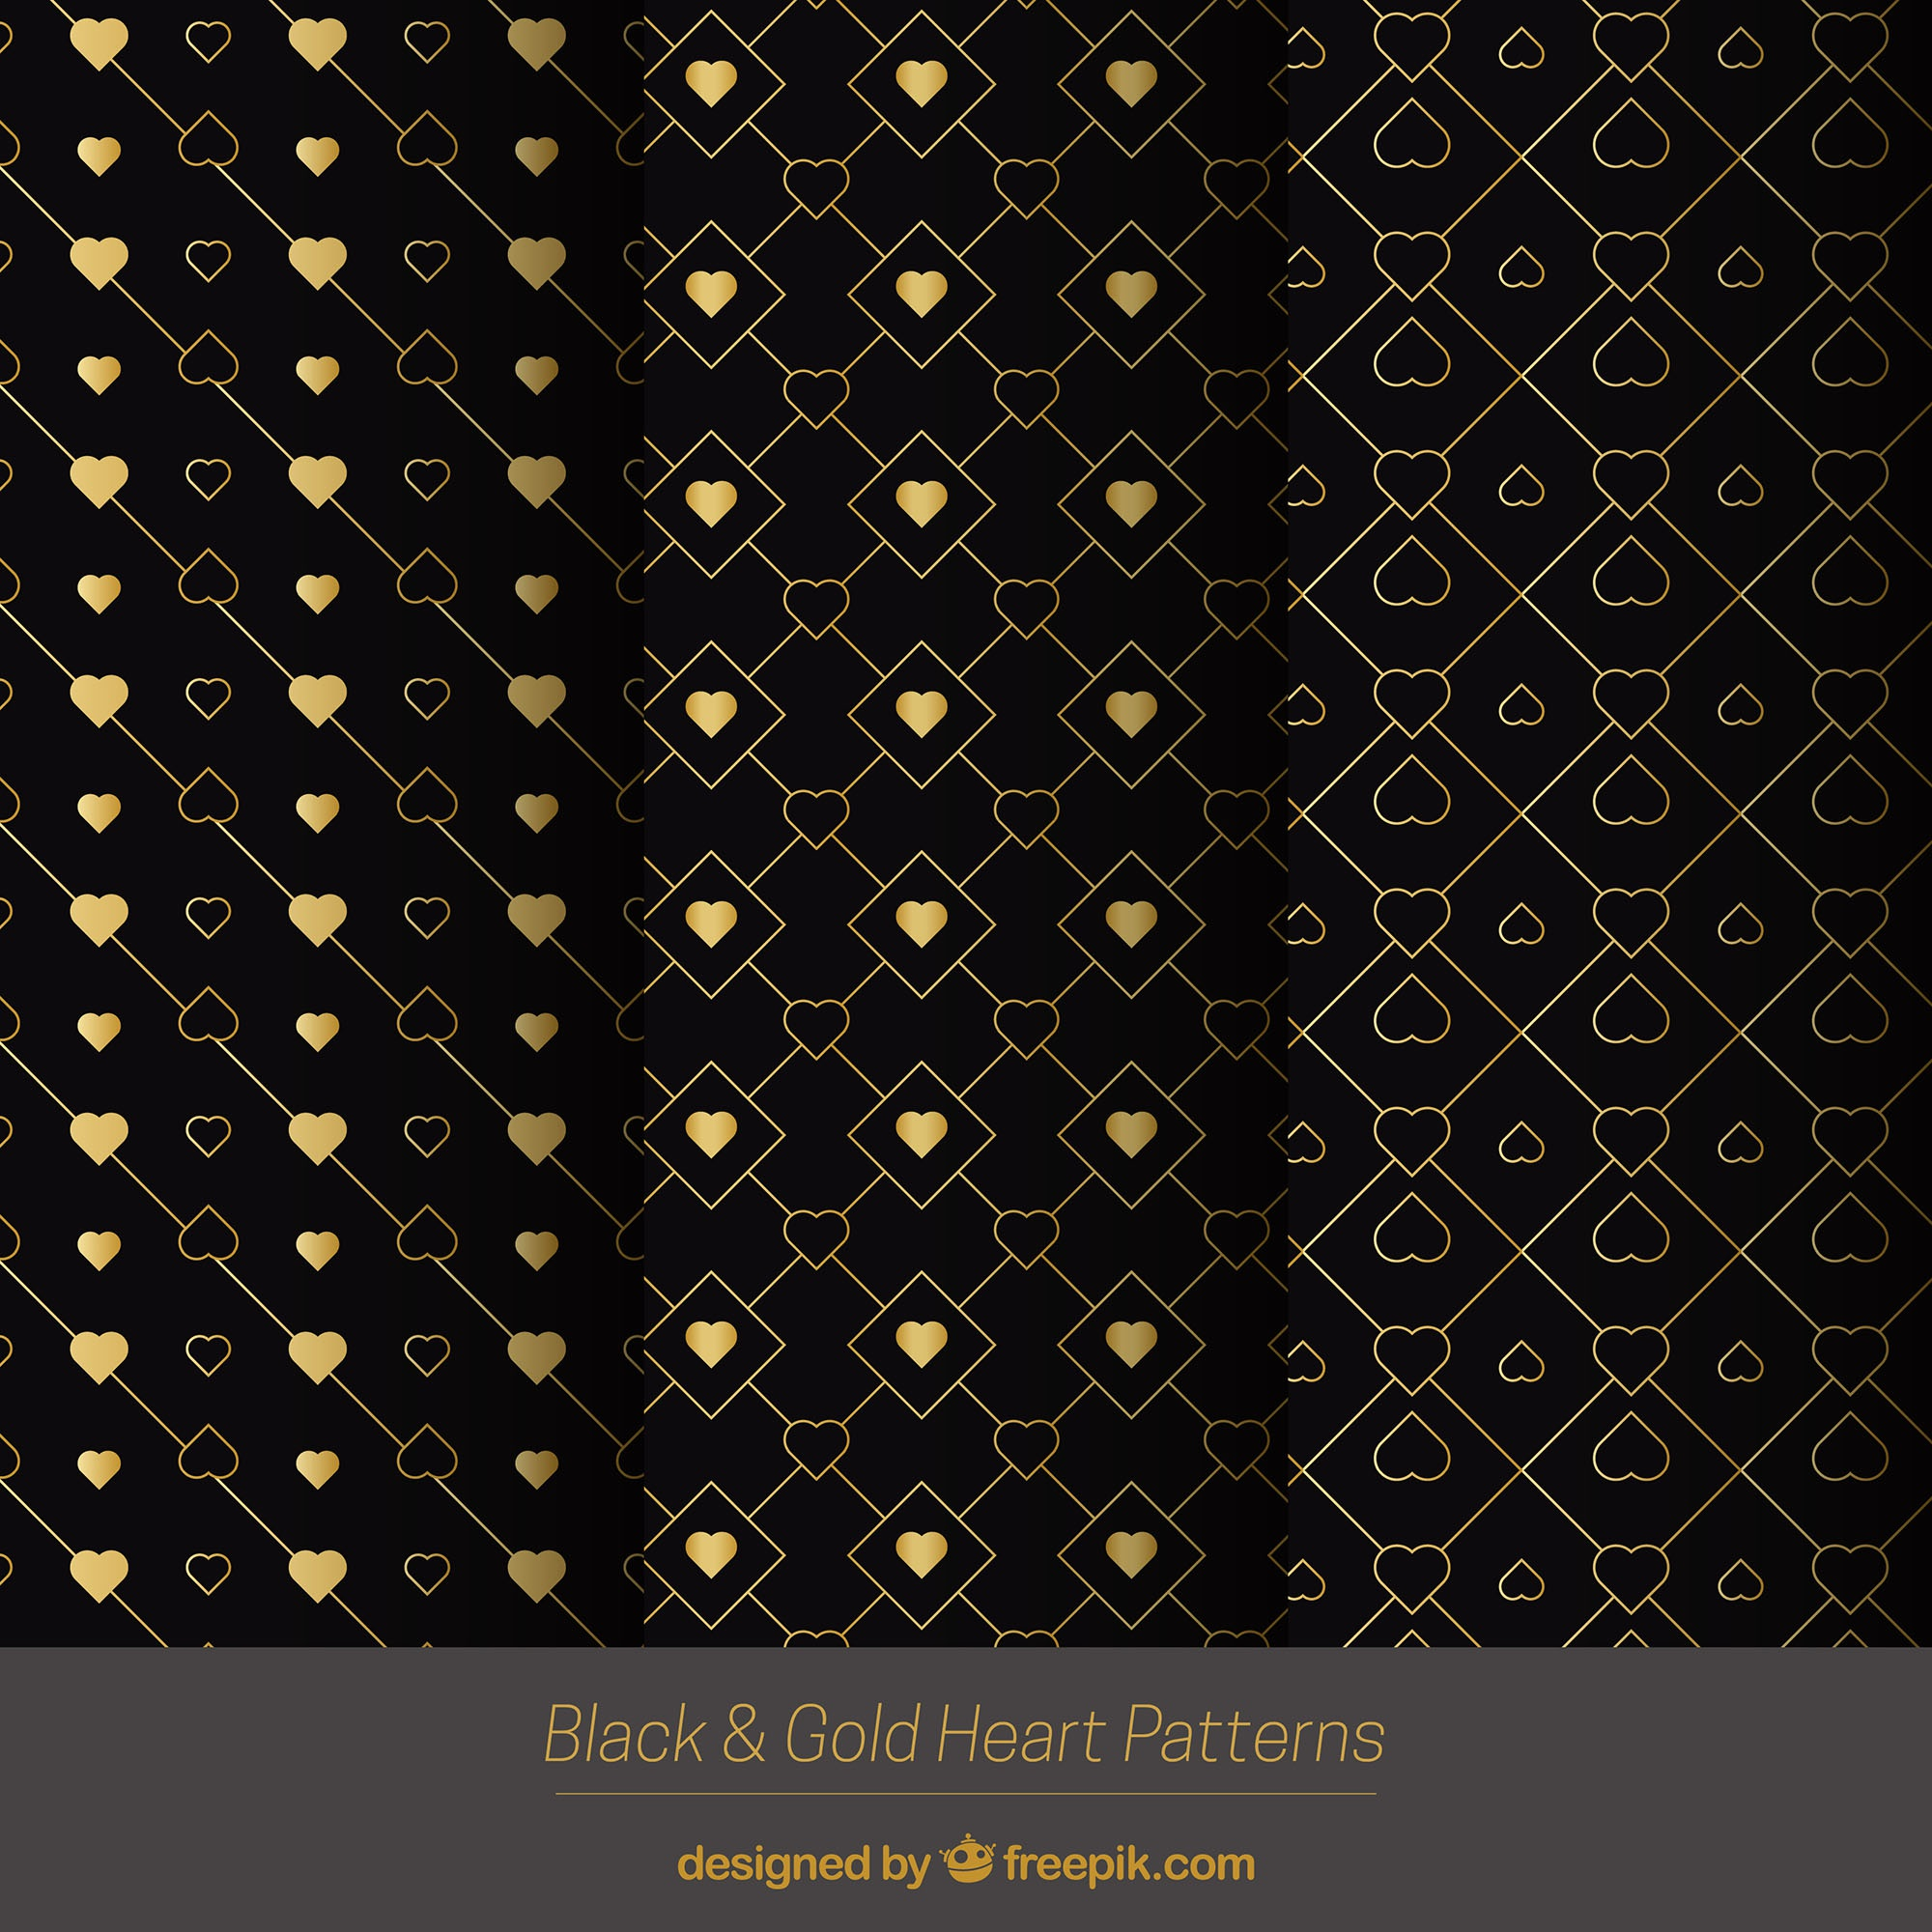 Golden patterns with decorative hearts